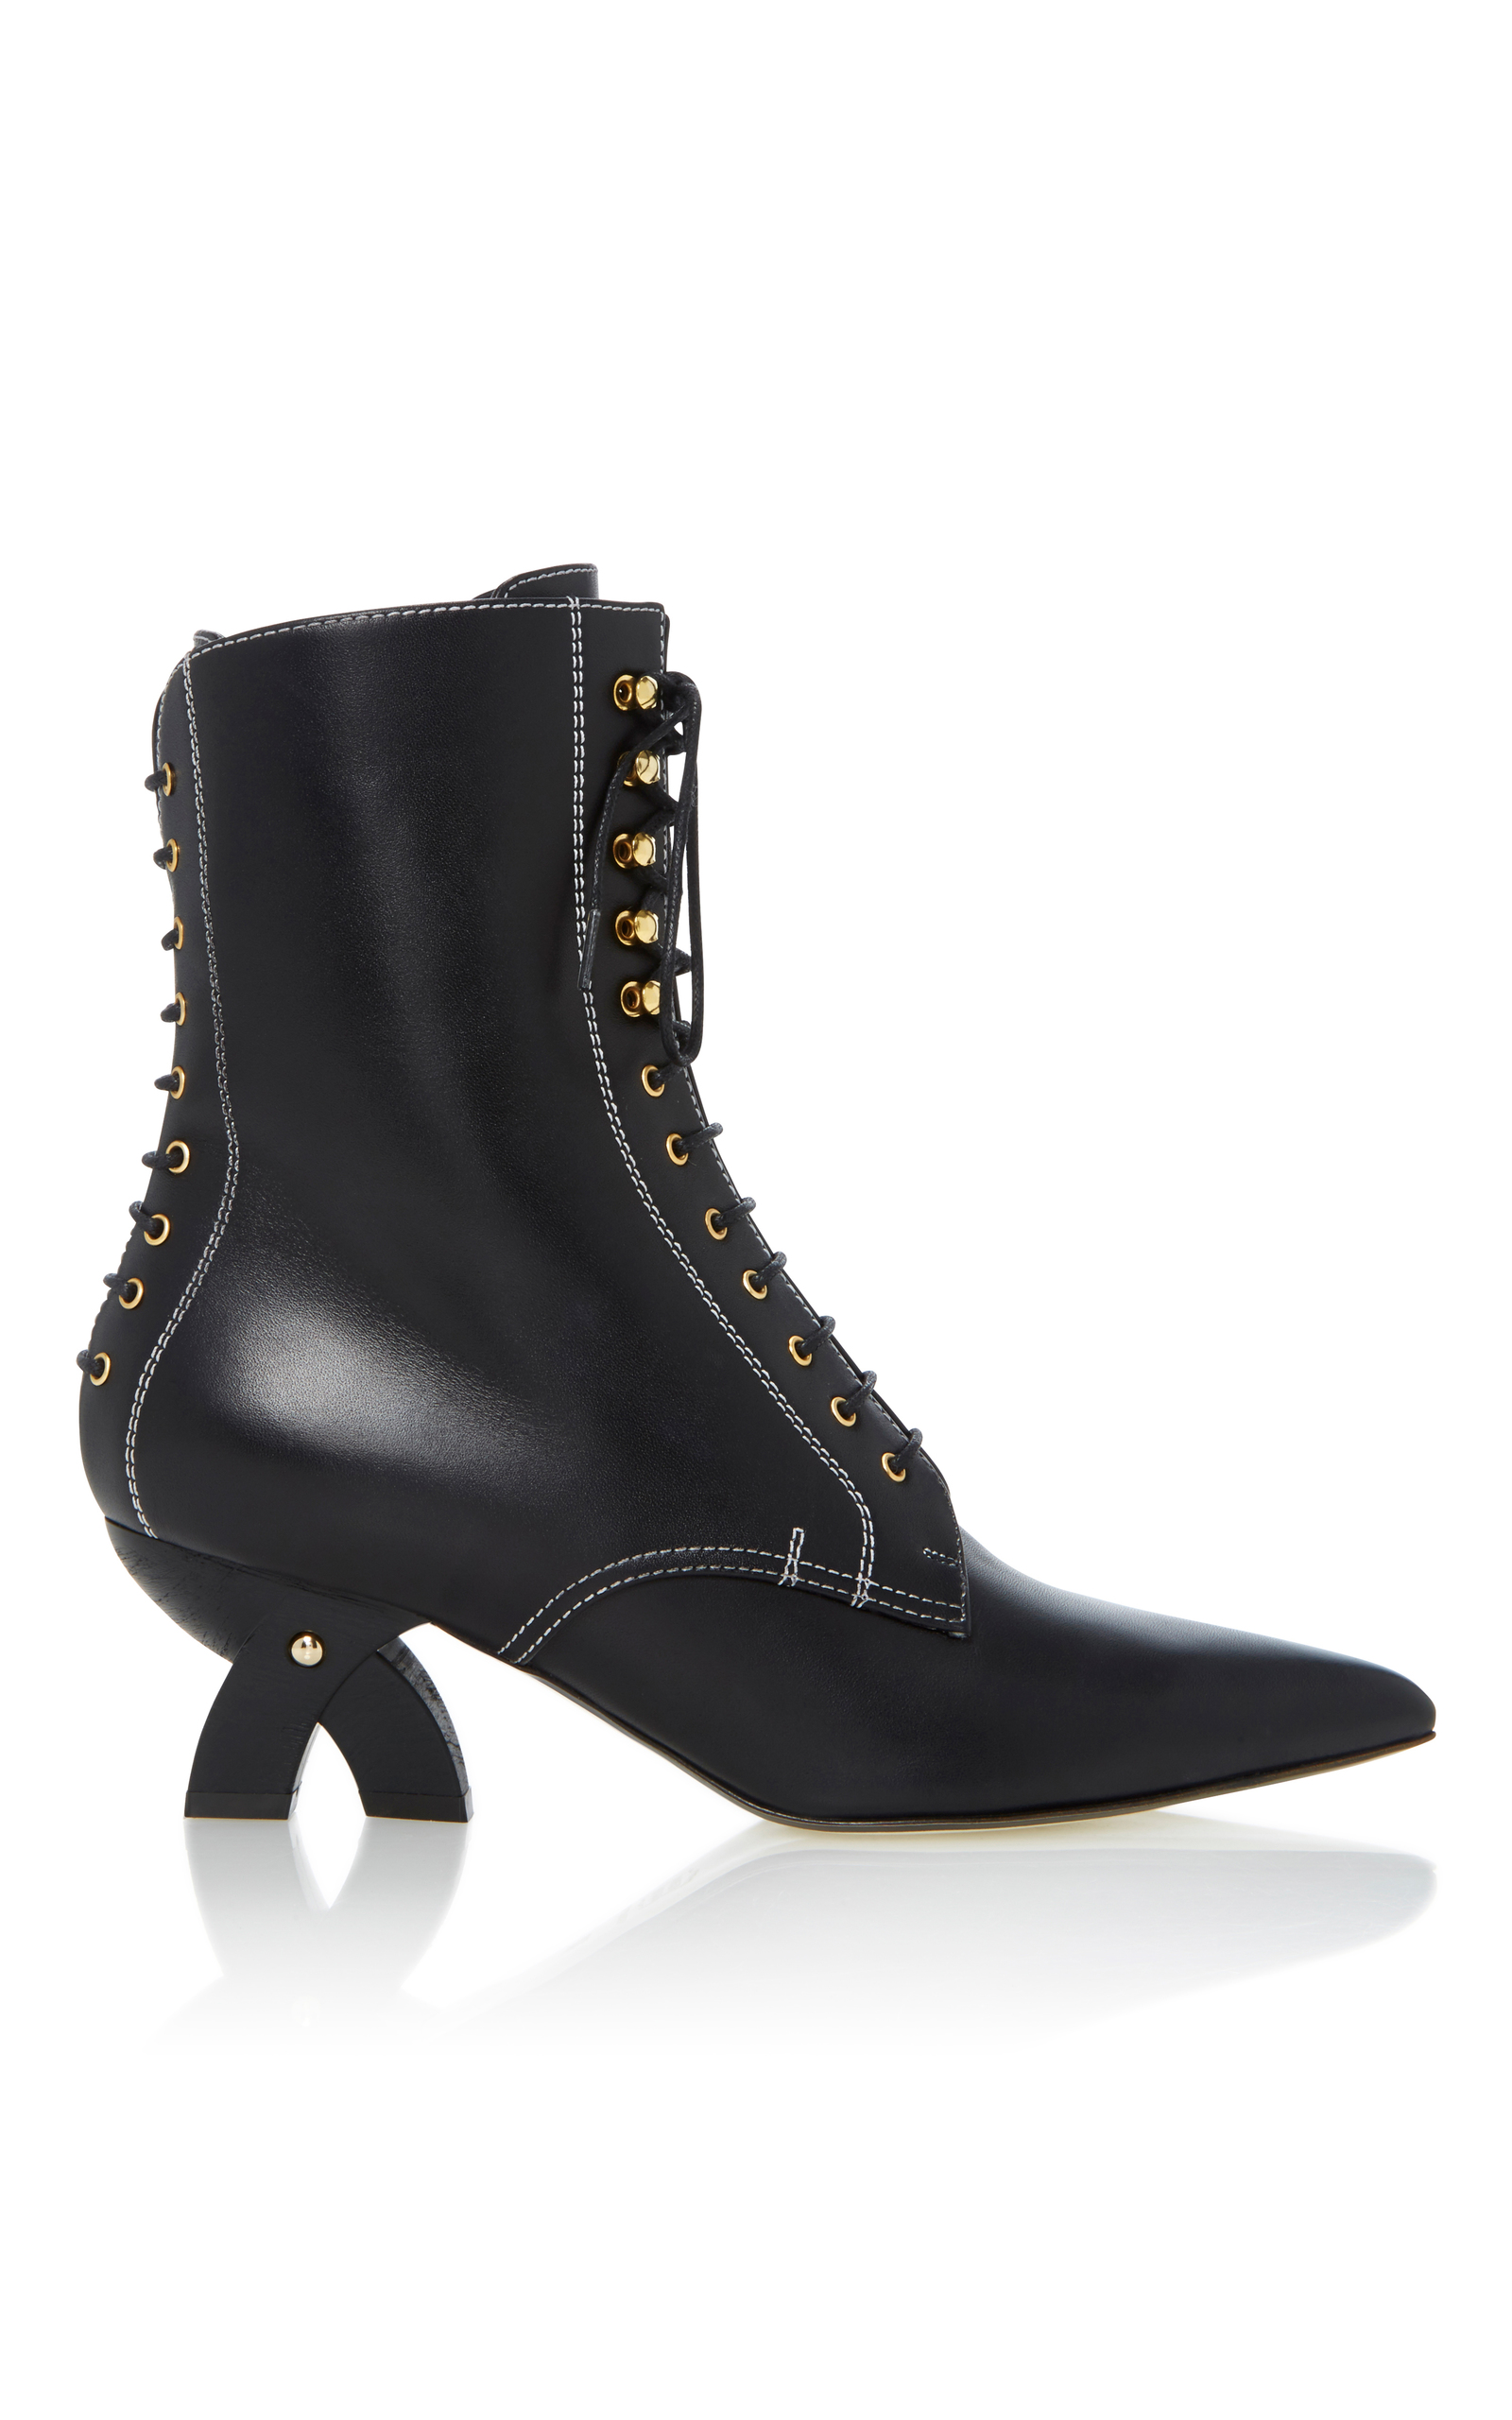 Loewe Leather Lace Ups